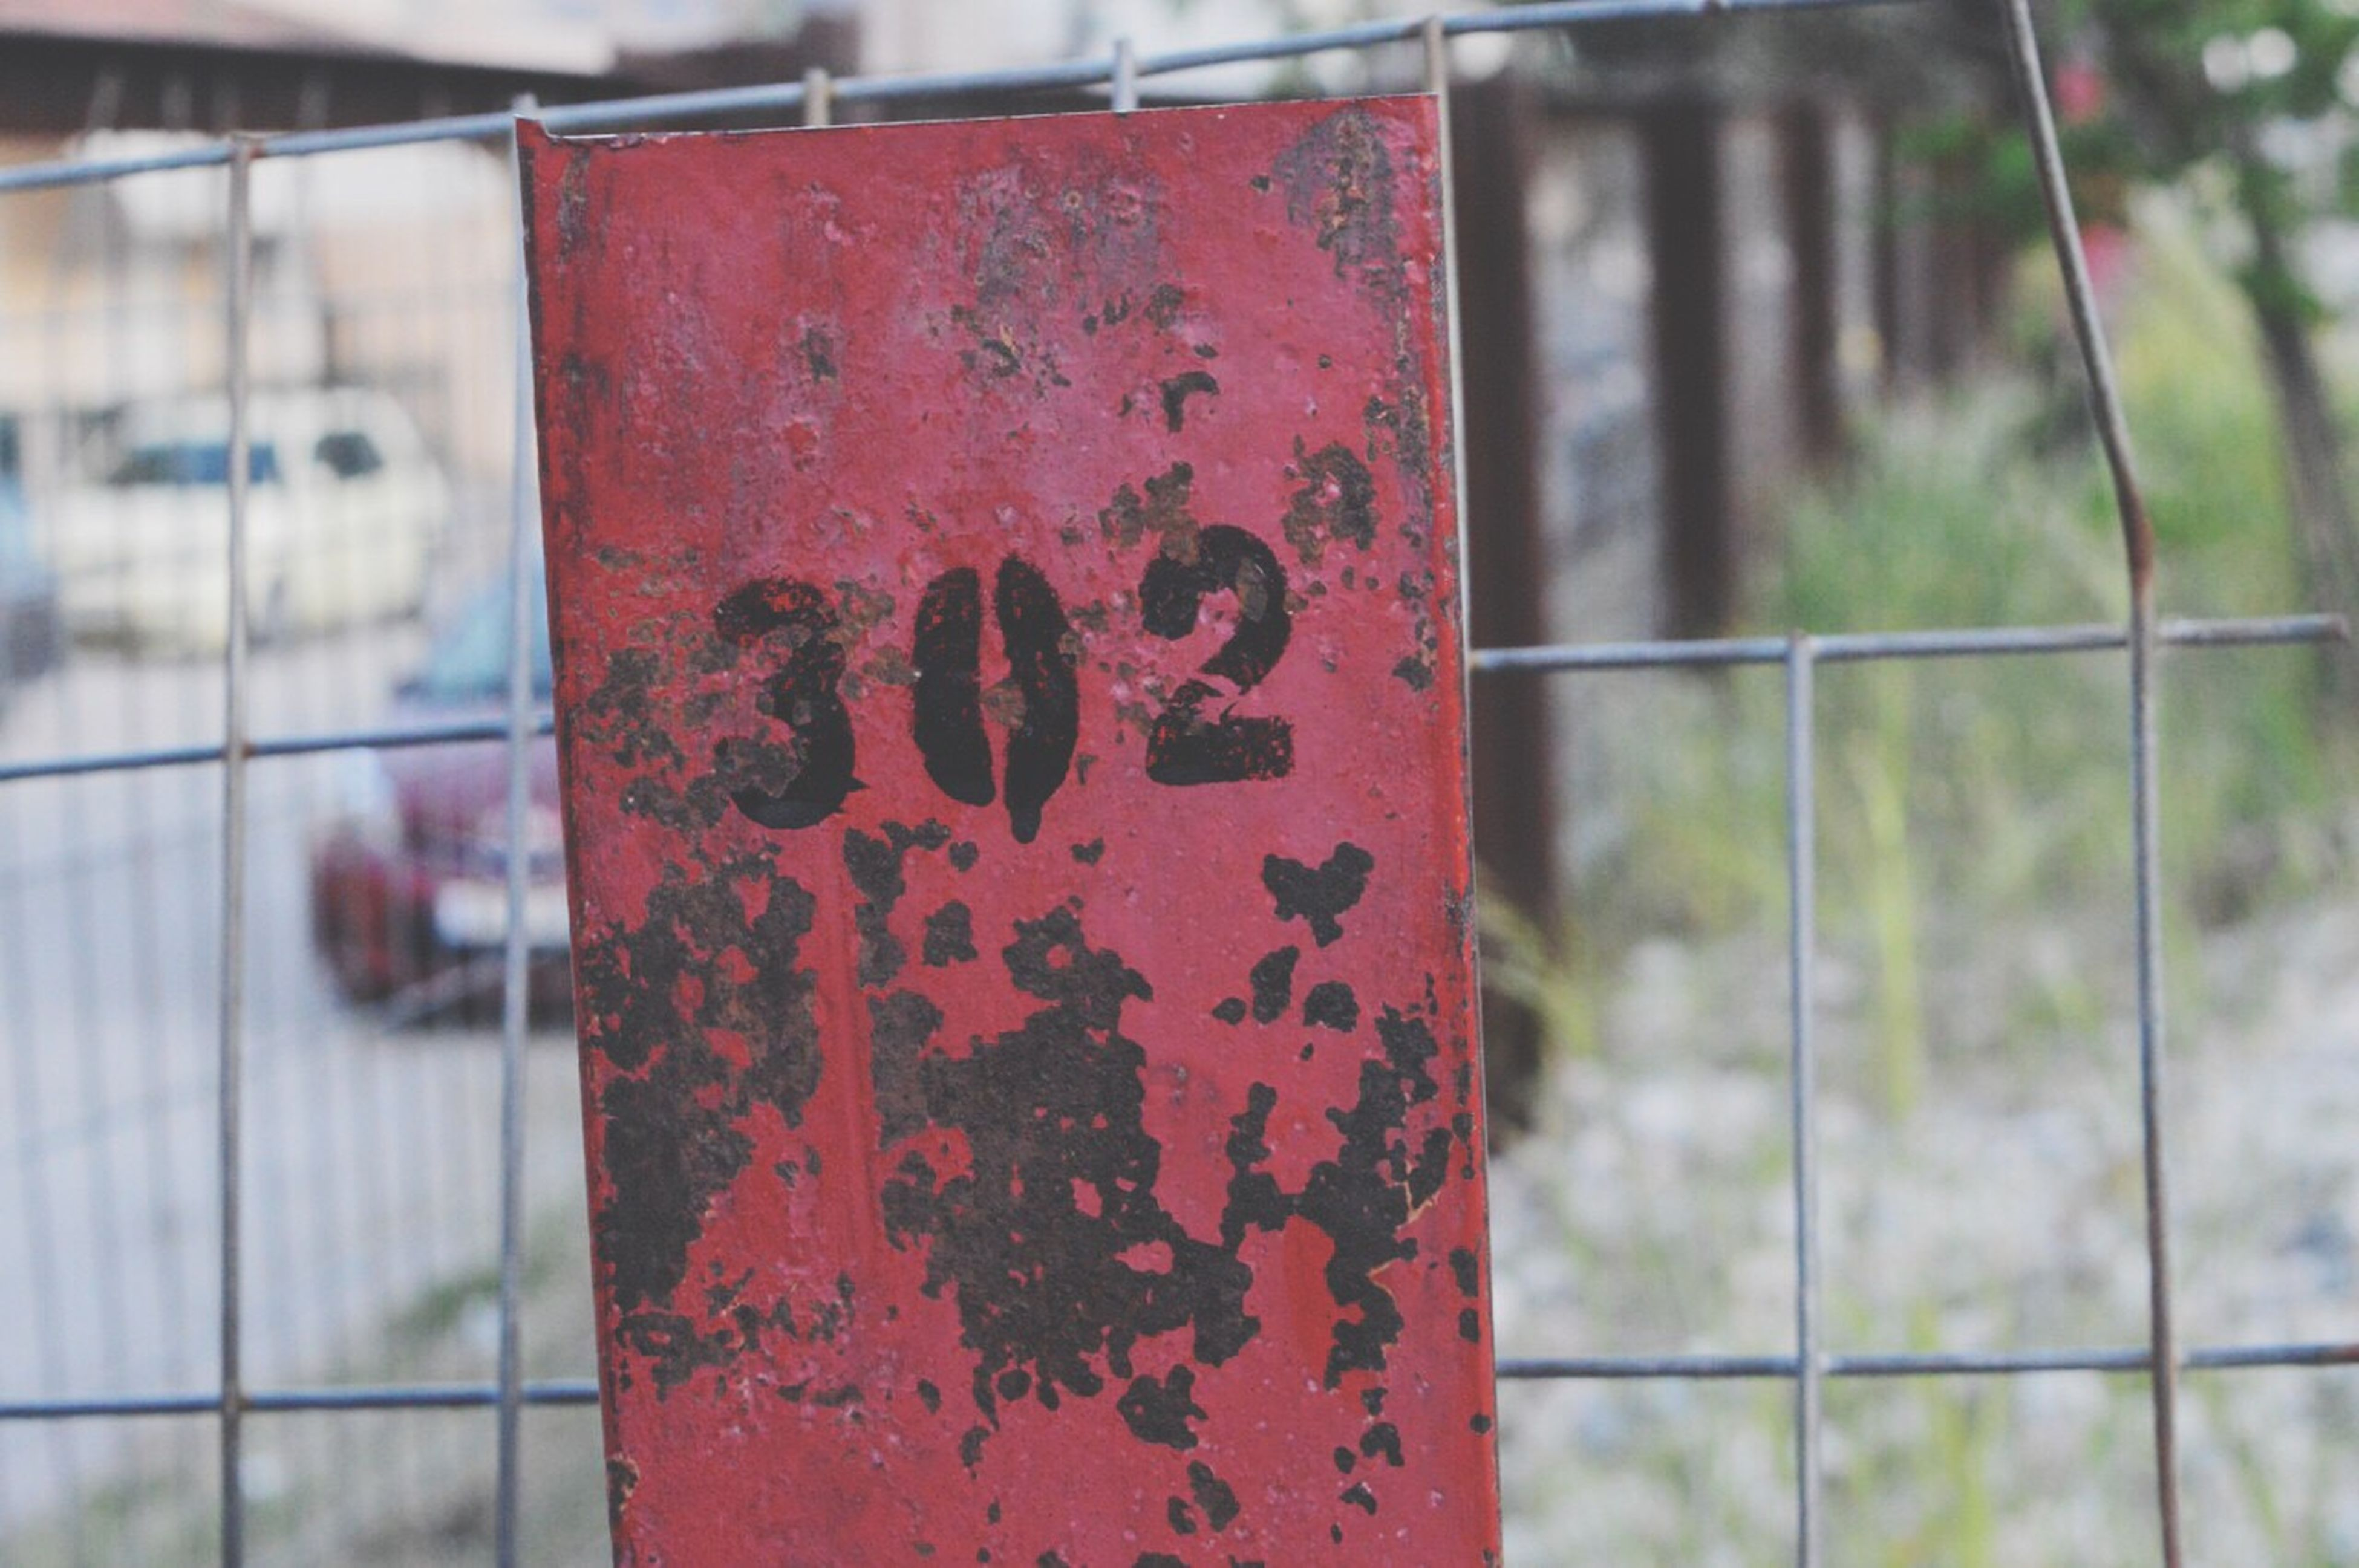 focus on foreground, protection, fence, safety, close-up, security, red, chainlink fence, metallic, padlock, day, outdoors, no people, selective focus, closed, forbidden, detail, full frame